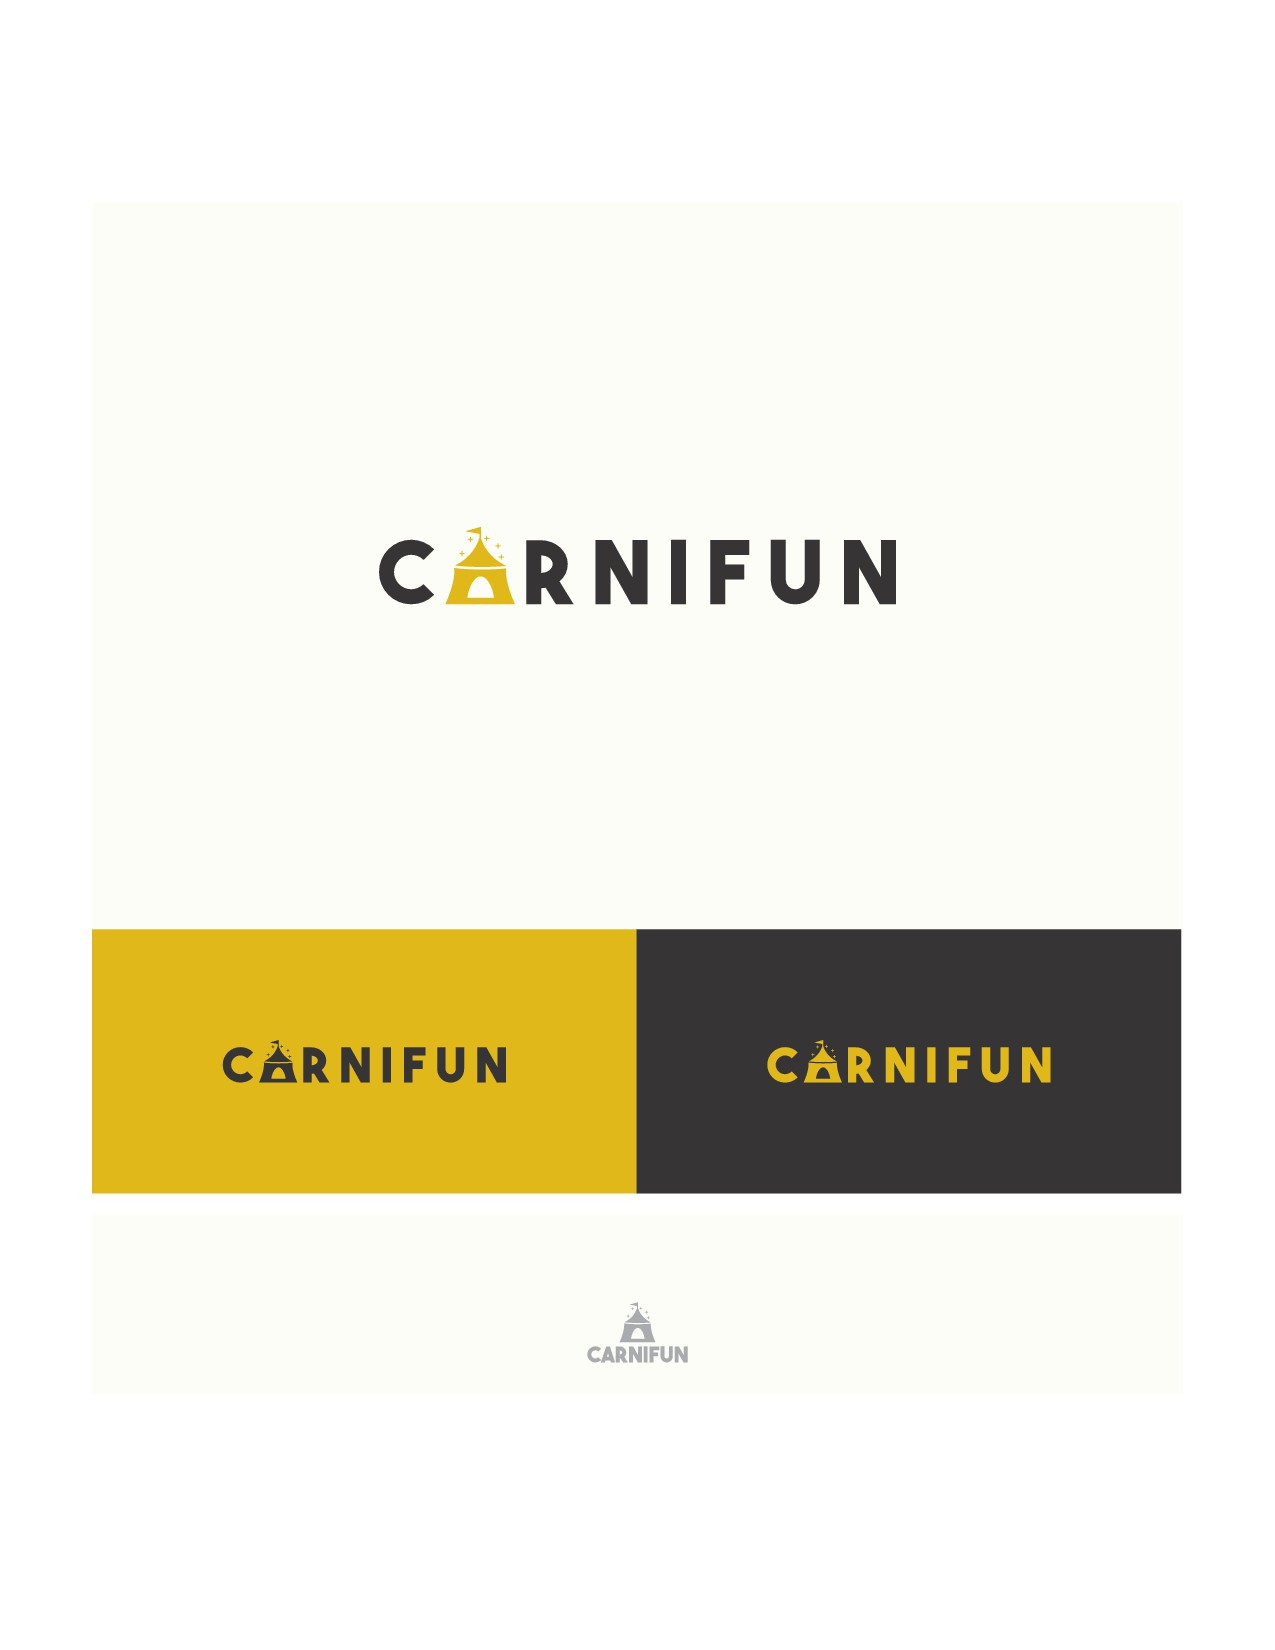 Design a simple logo for Carnifun with a big impact